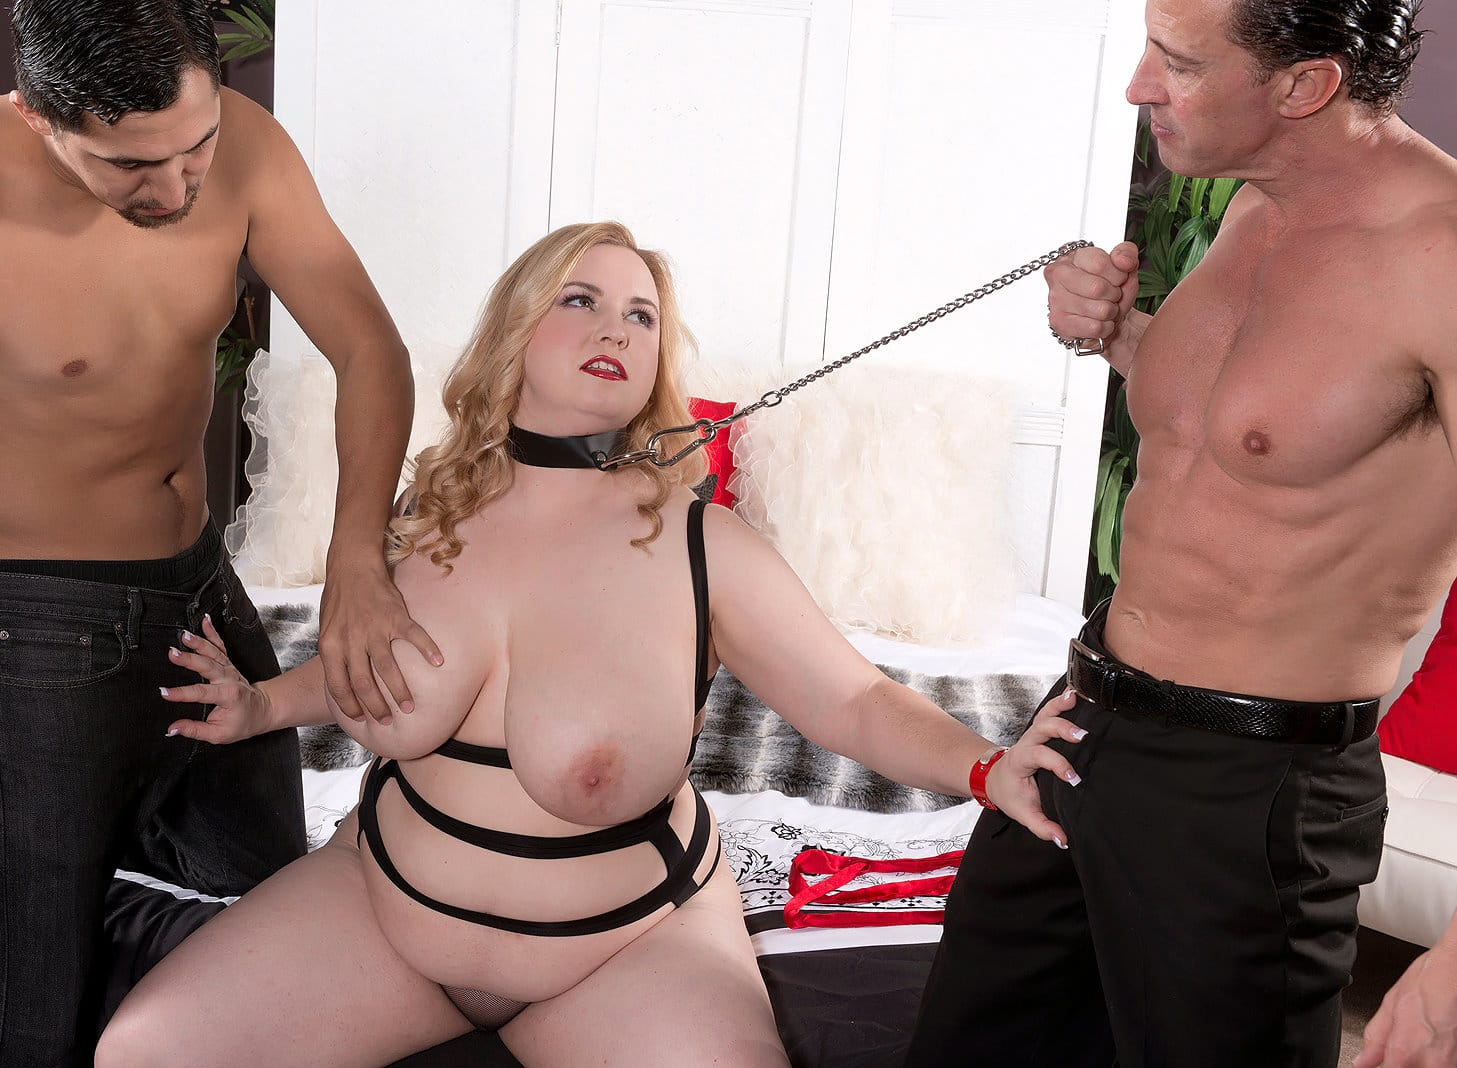 xl-girls-nikky-wilder-gets-hammered-from-both-ends